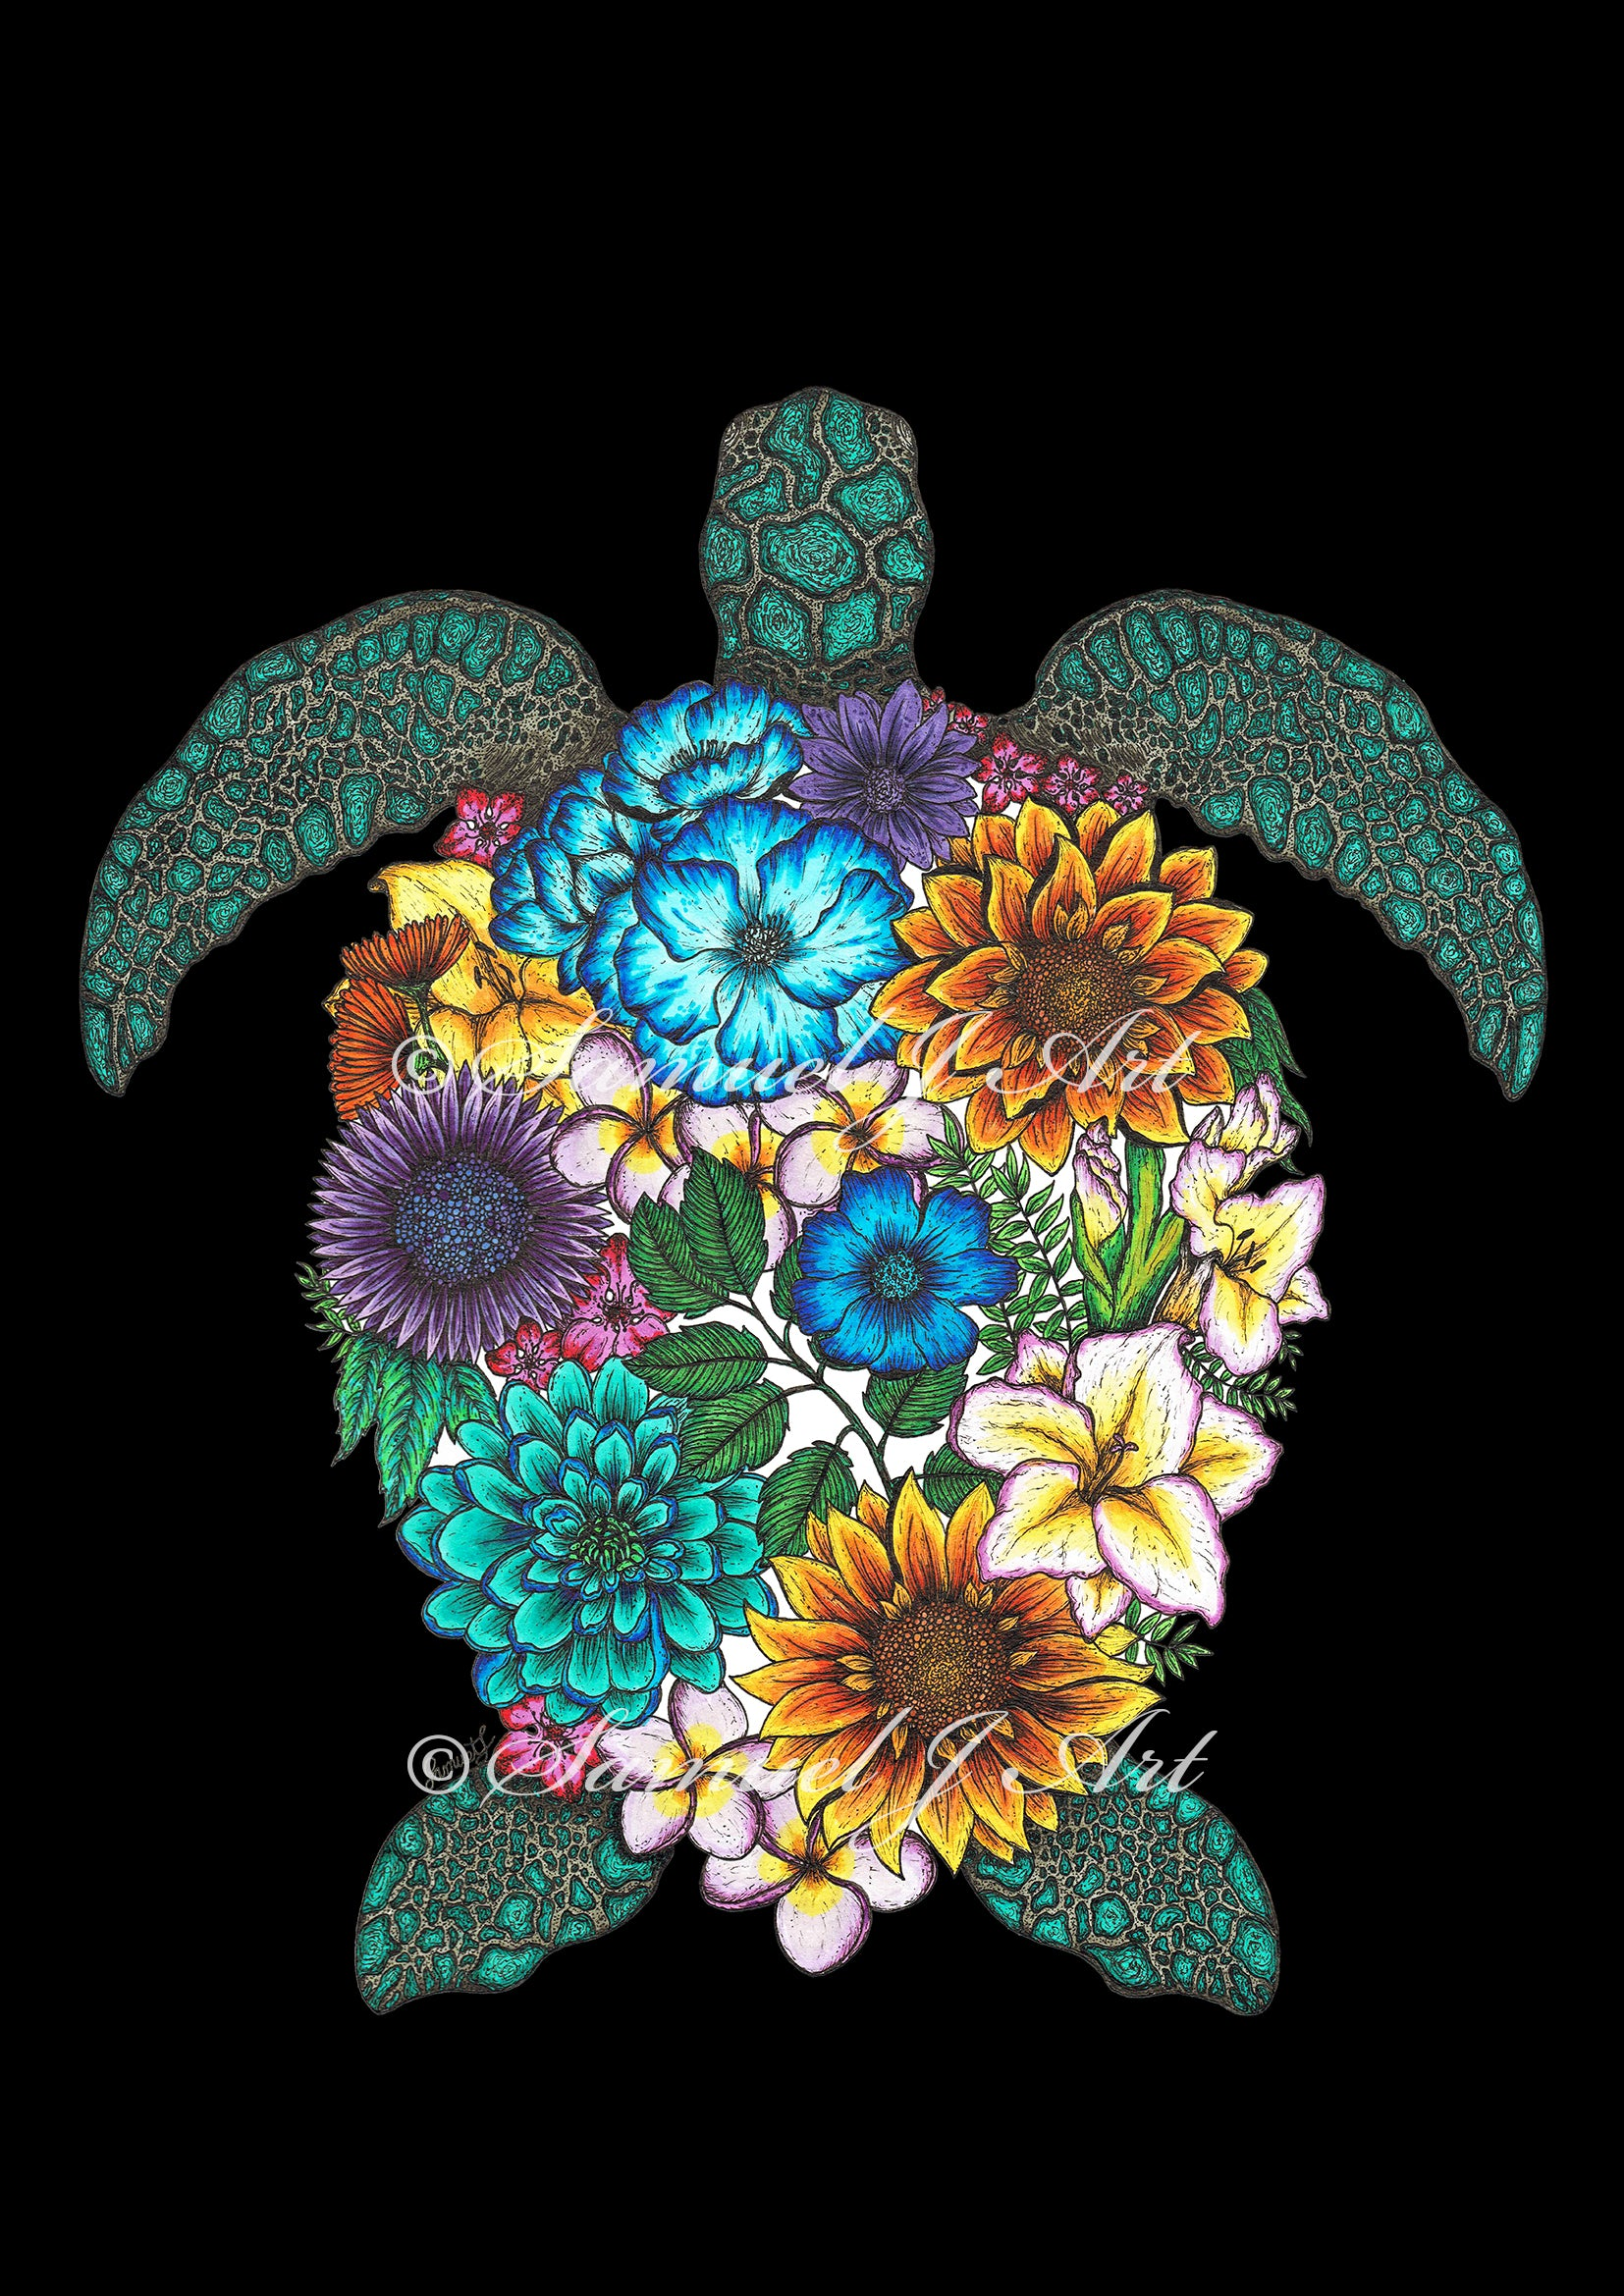 Floral Turtle - Colour - Black Background